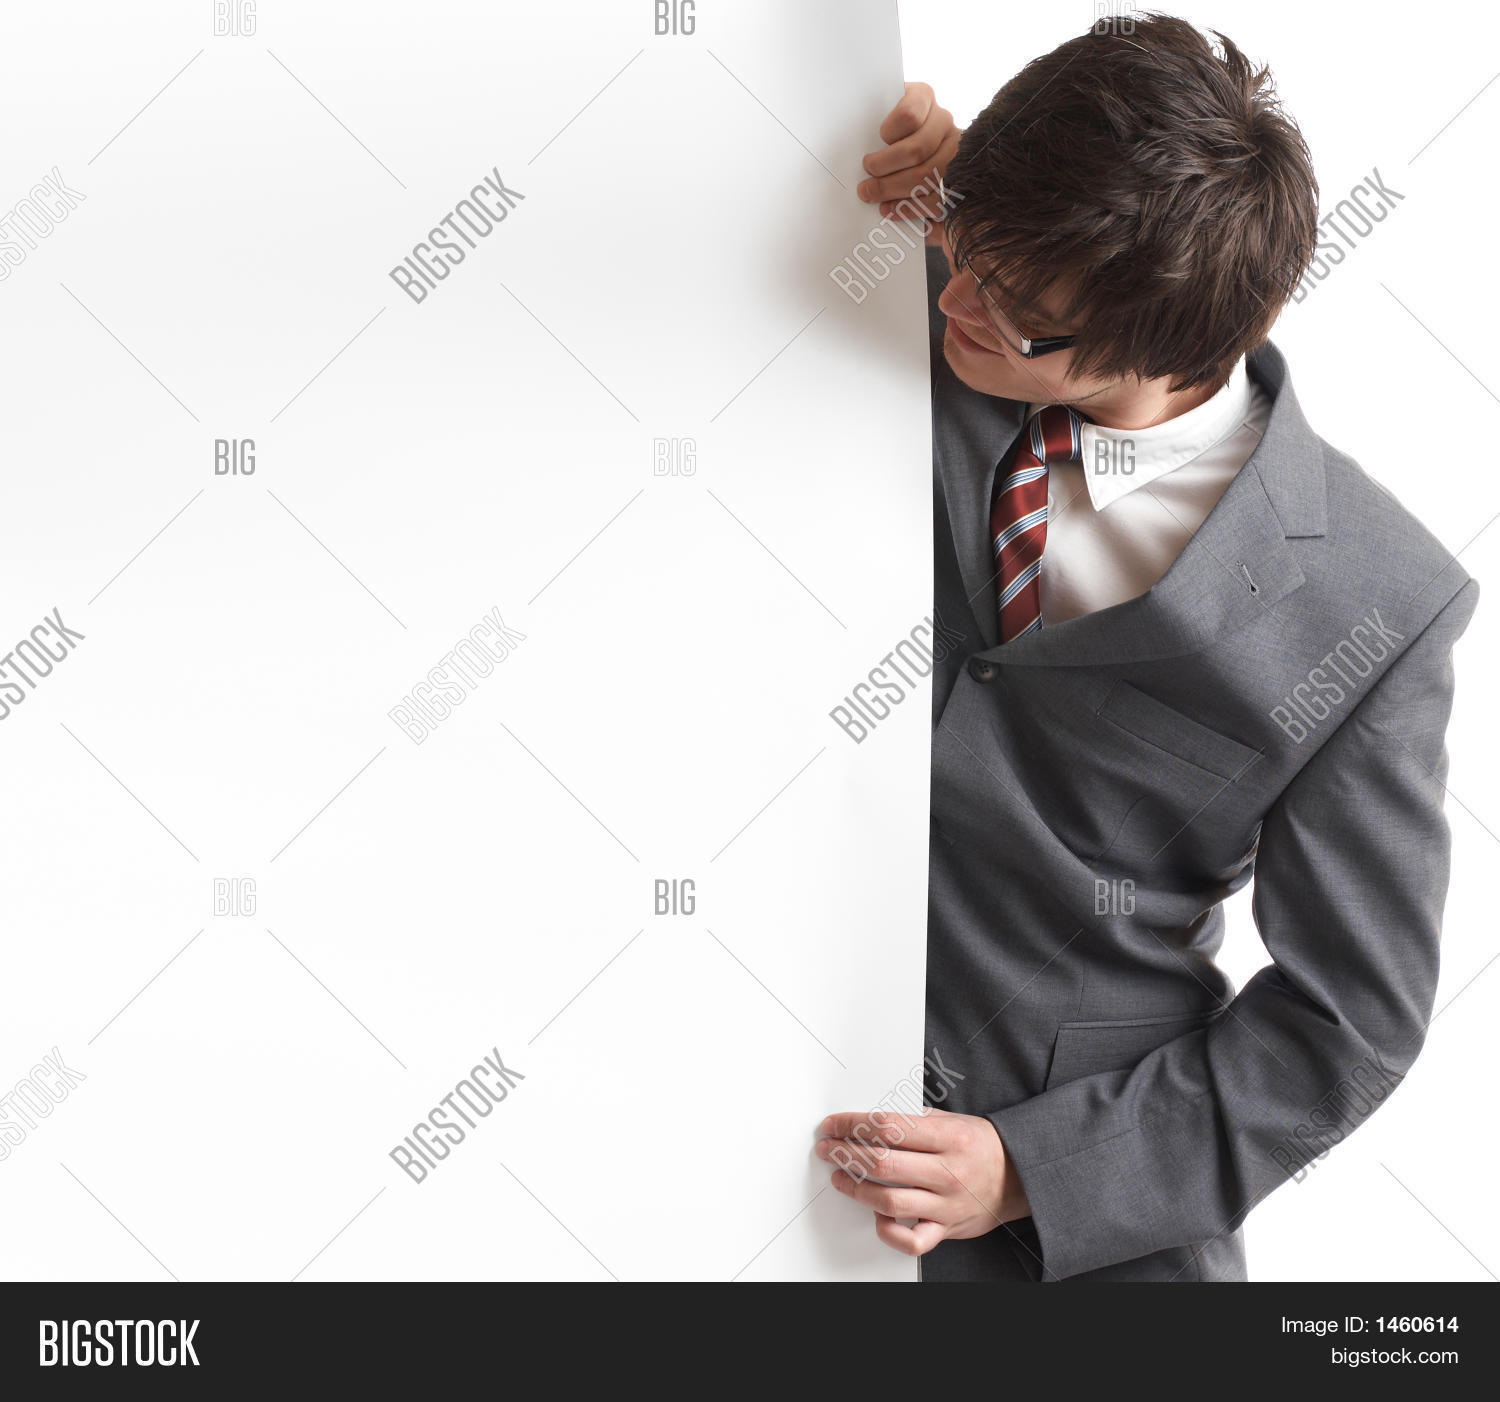 ad,advert,advertise,advertising,banner,card,cardboard,carton,copyspace,diversity,formal,fun,guy,handsome,happiness,happy,head,hold,isolated,joy,male,man,men,people,portrait,promote,promotion,smile,standing,tie,top,tuxido,wear,write,young